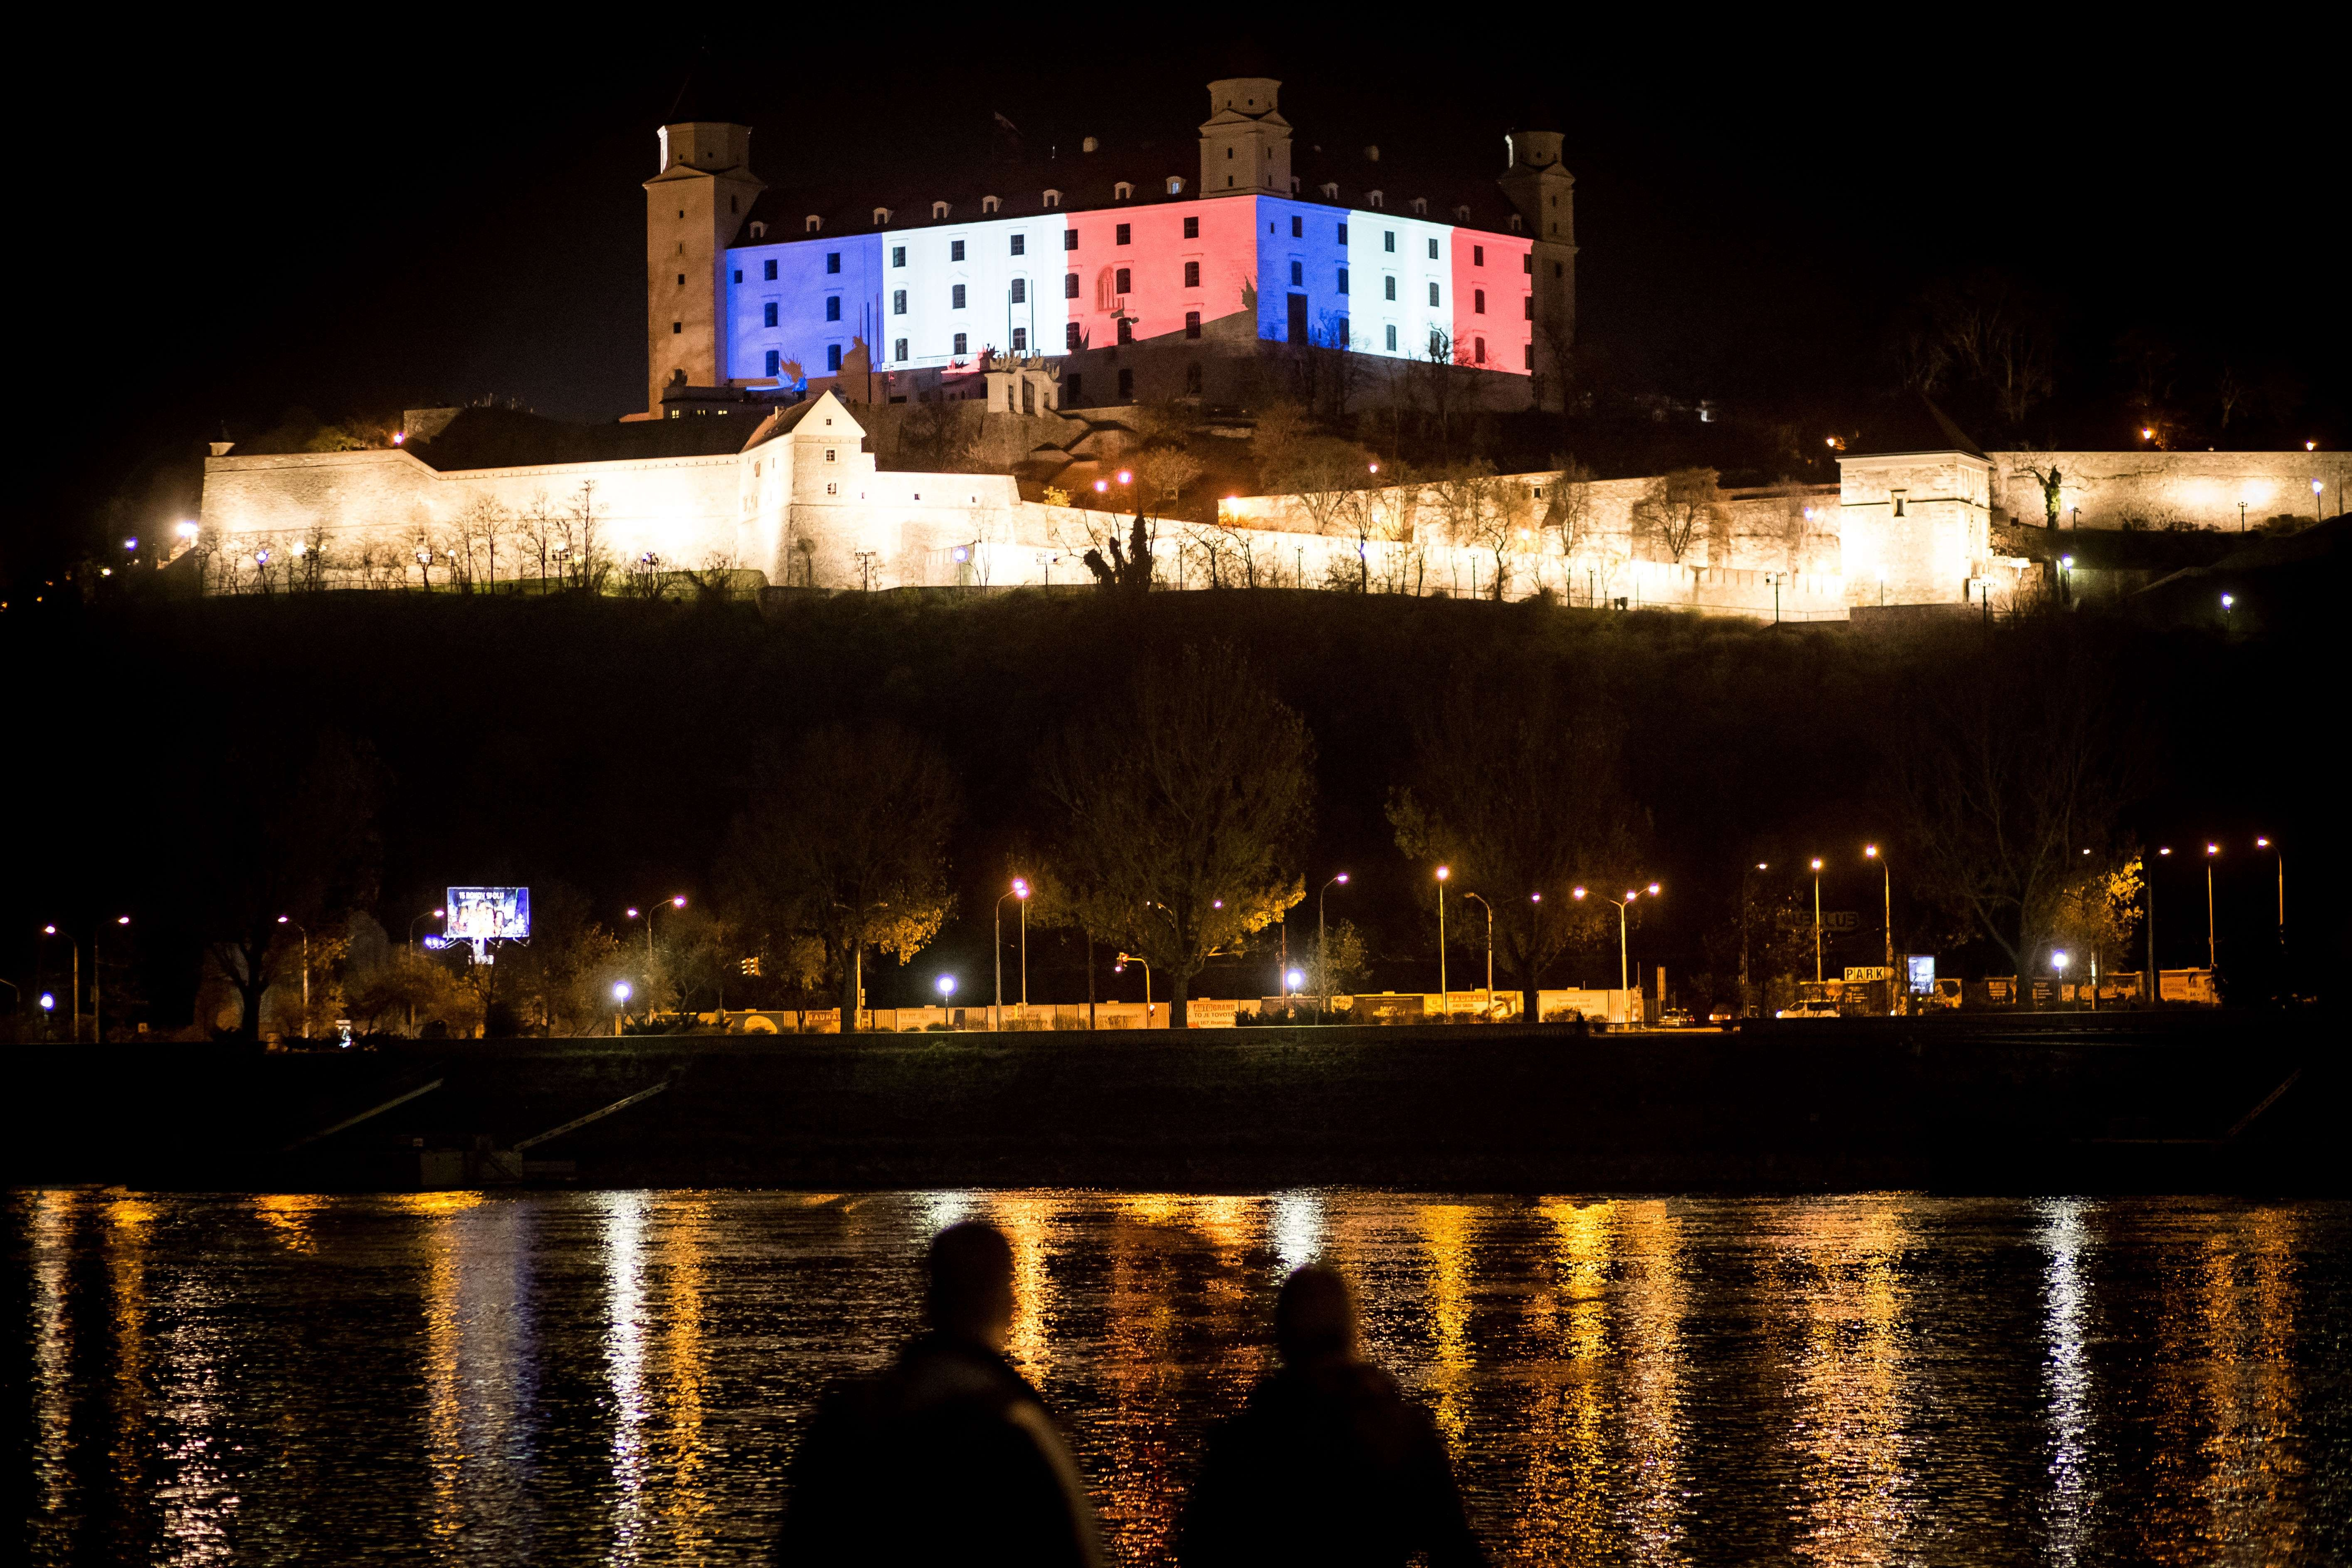 Bratislava Castle is lit in red, white and blue, the colors of the French flag, in Bratislava, Slovakia on Nov. 14, 2015.